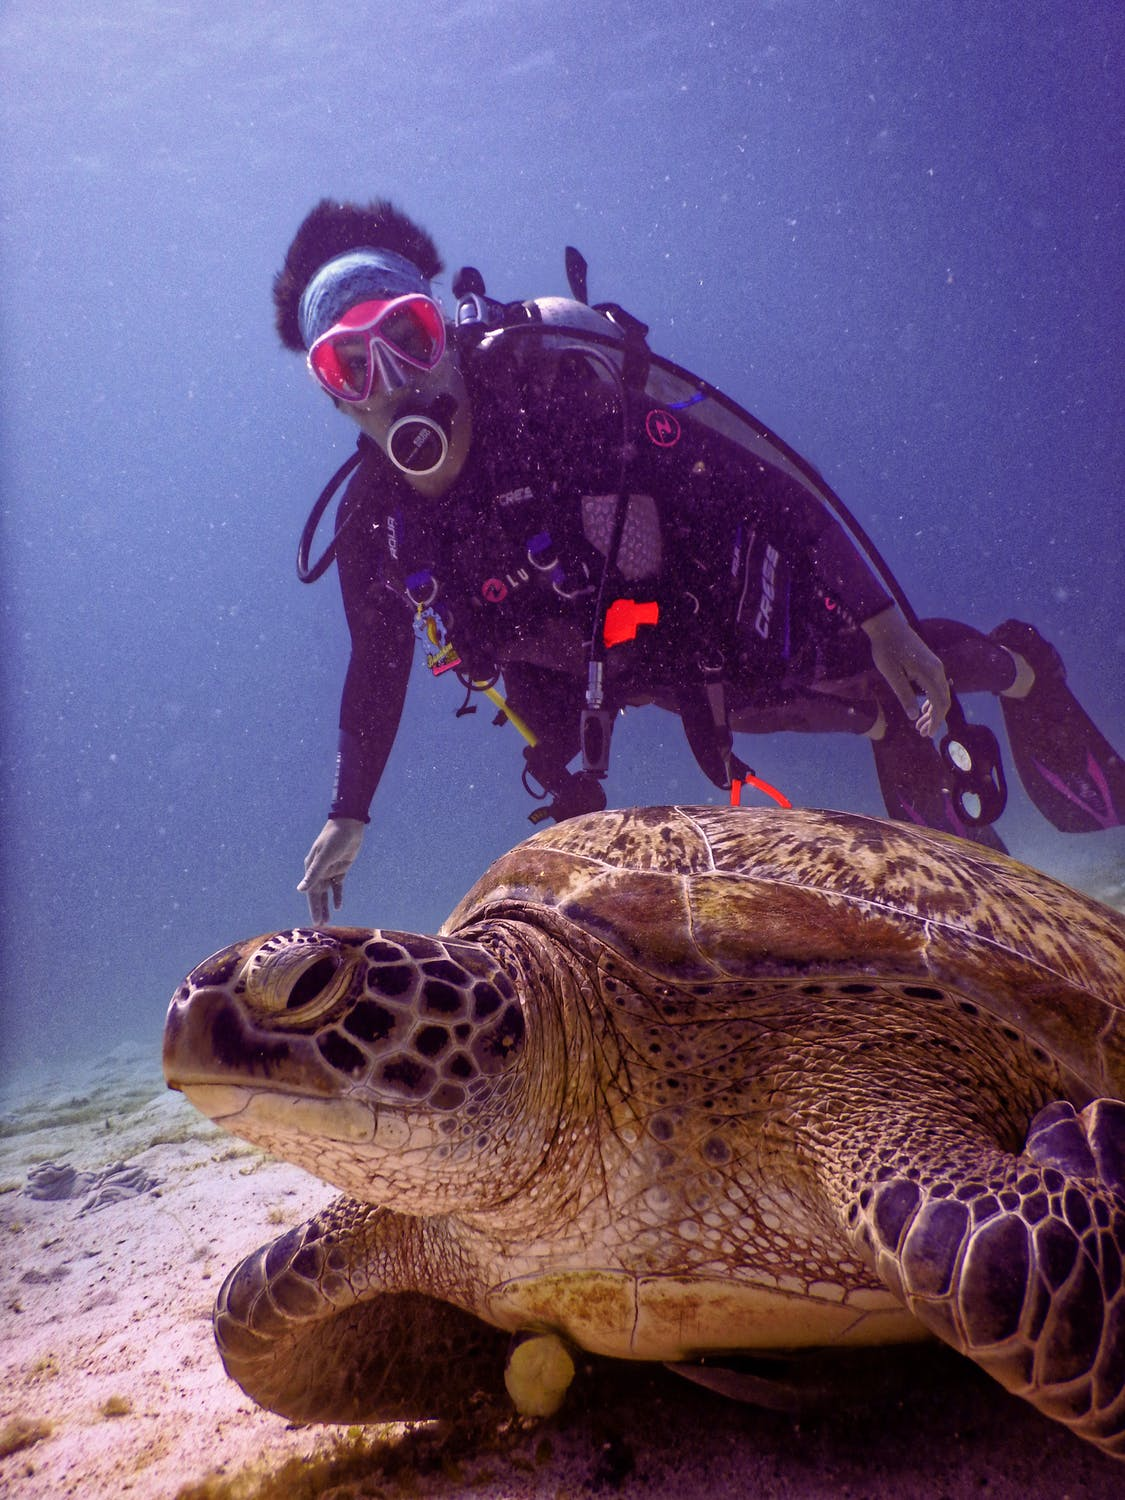 scuba diver swimming next to turtle